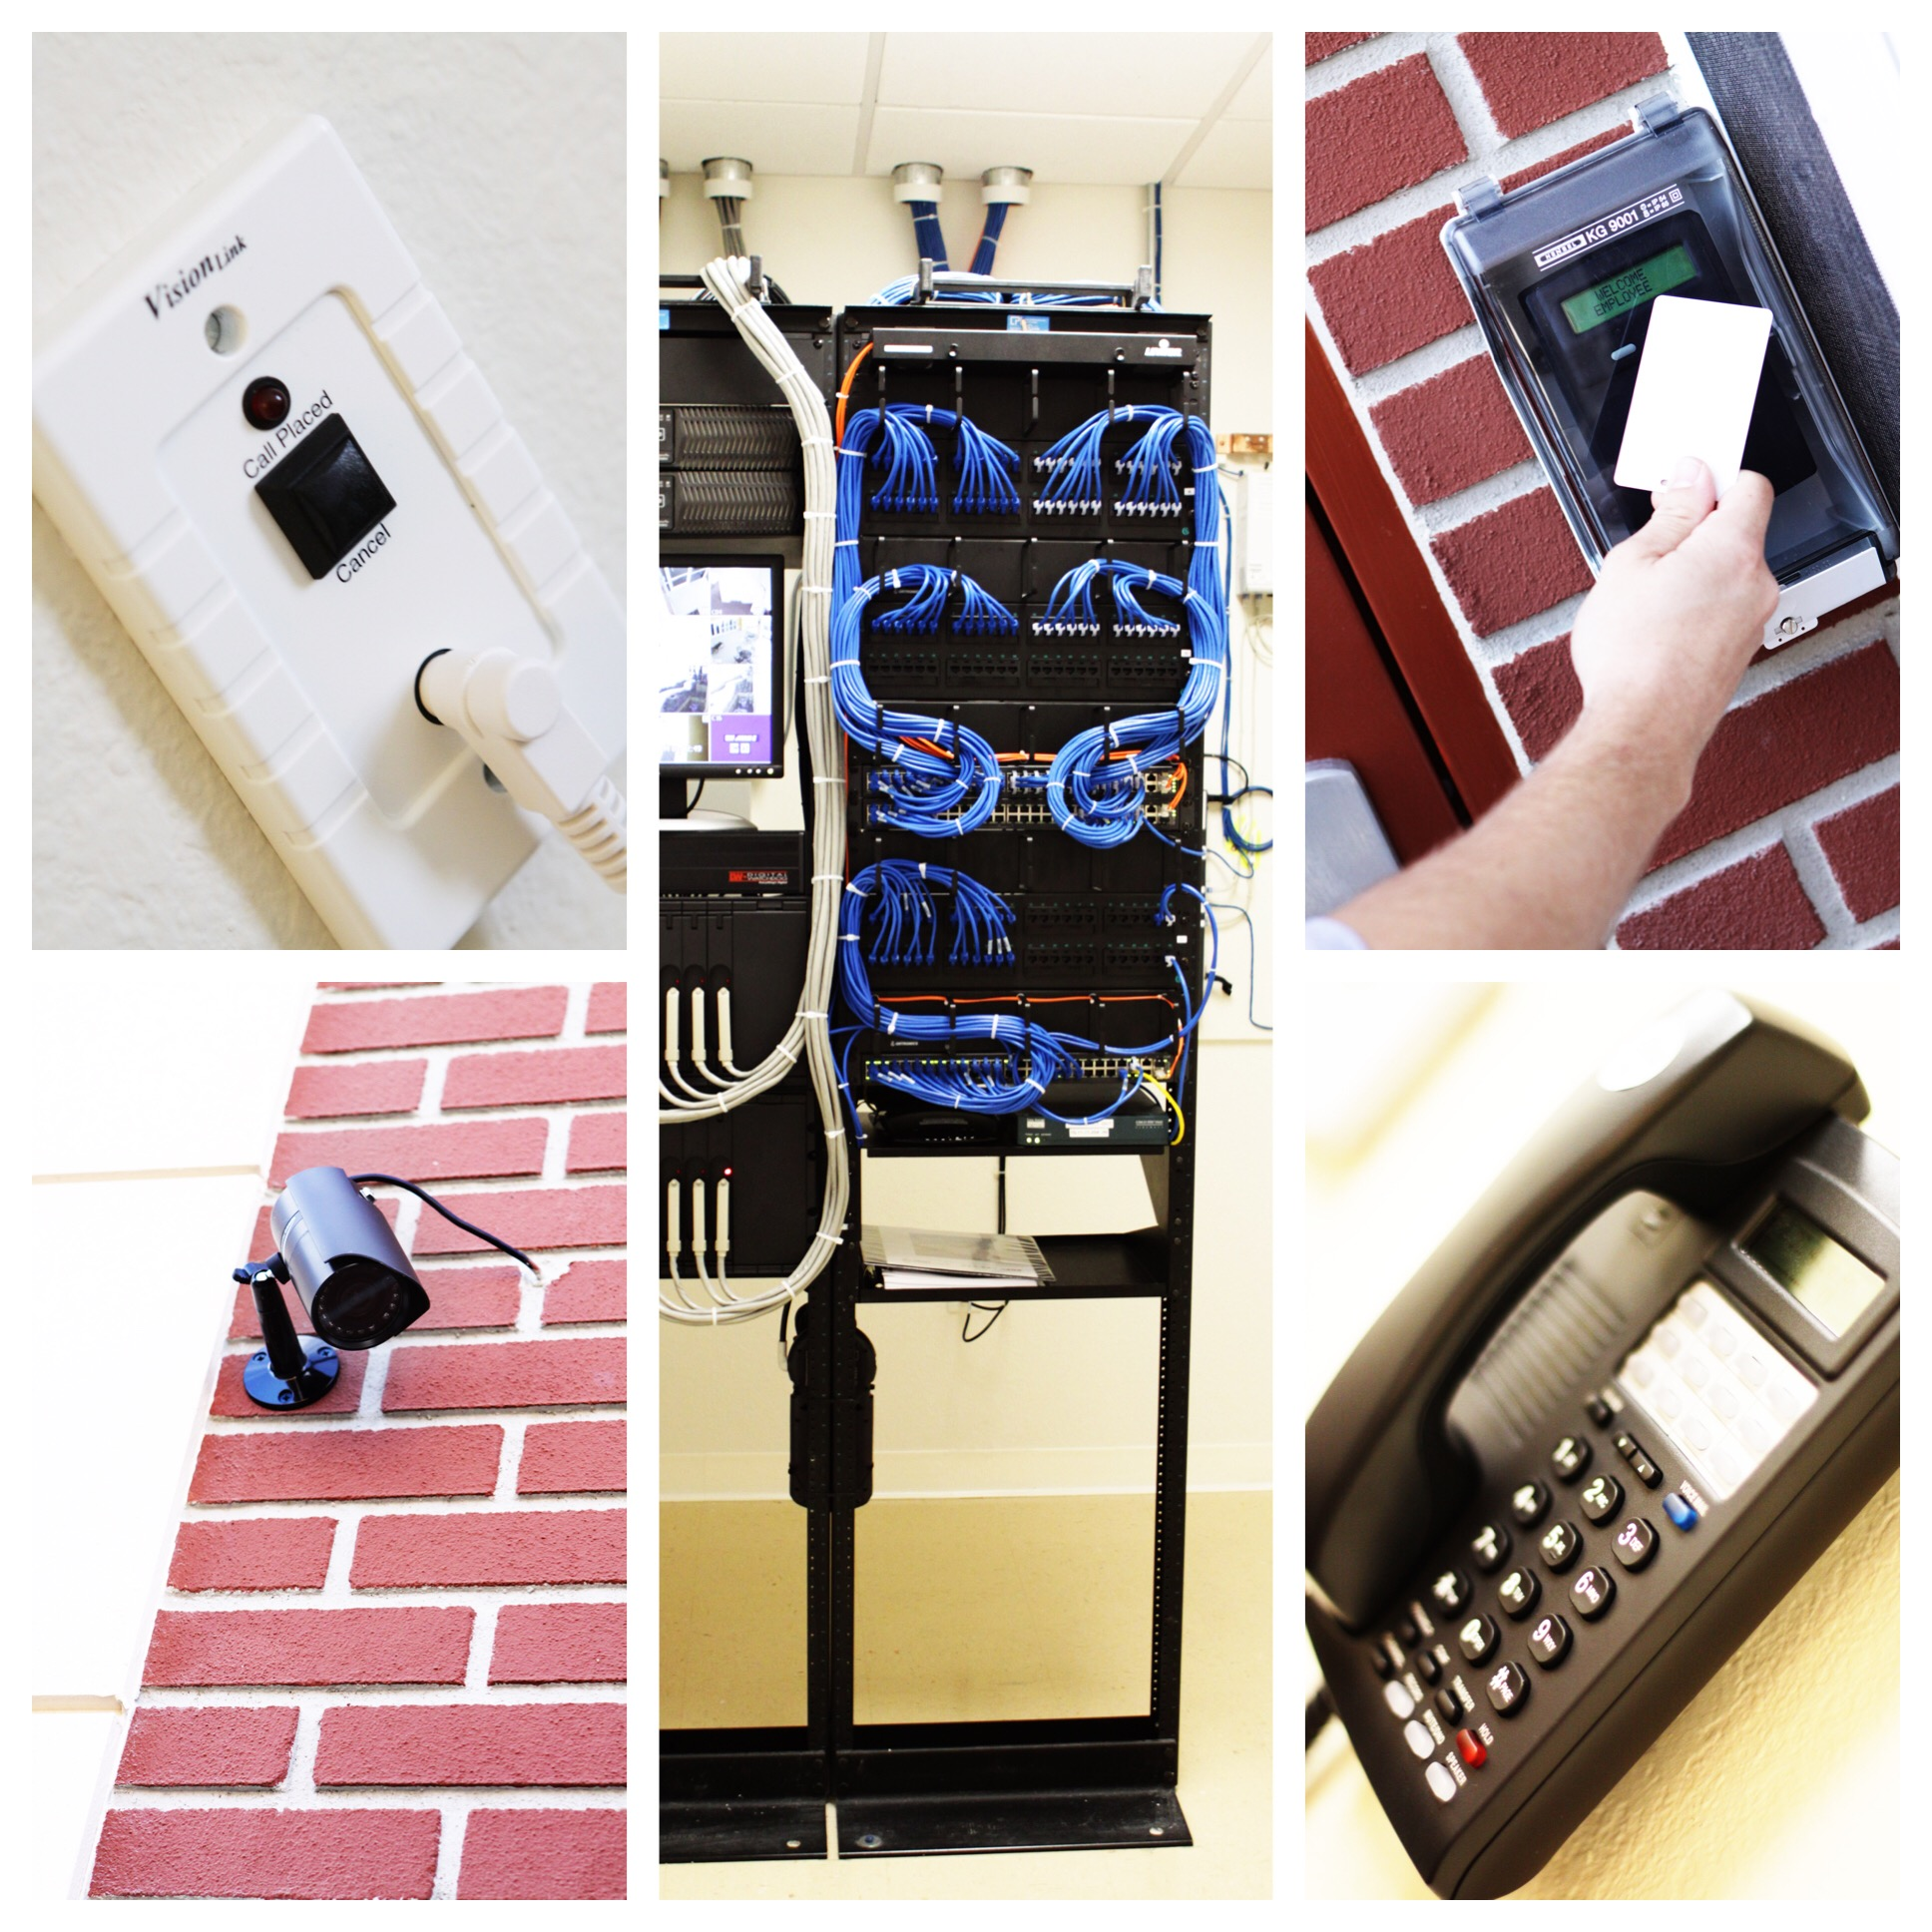 Tampa Technology Solution Provider